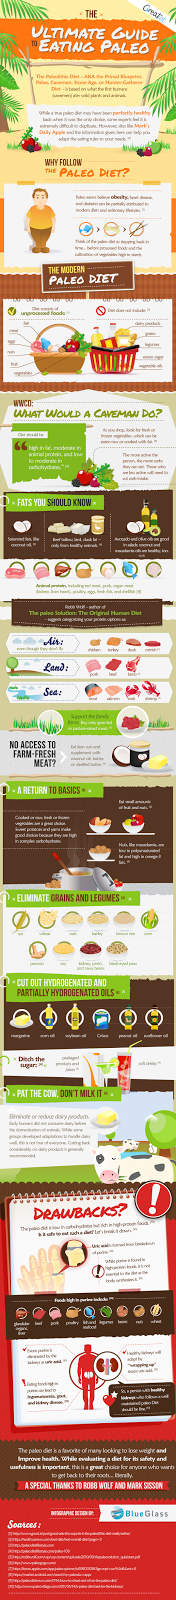 The Paleo Diet Explained 4/4